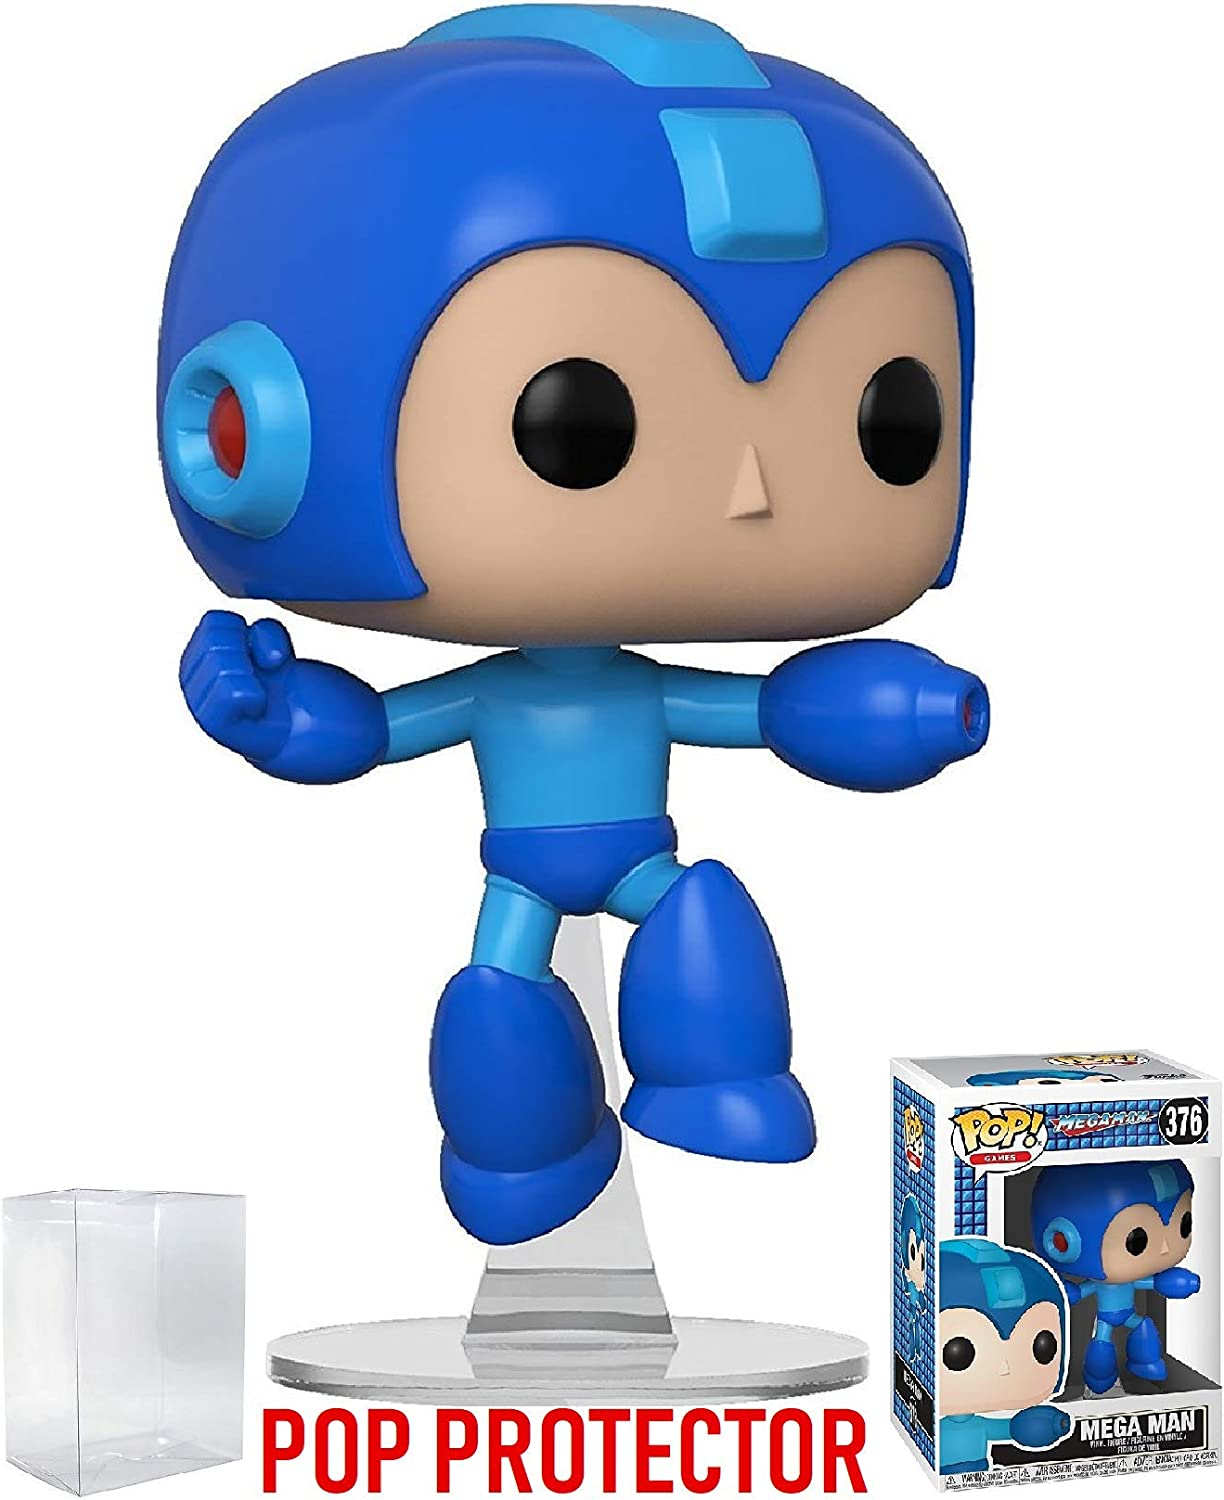 Brand New In Box Jumping Megaman Funko Pop Games: Megaman